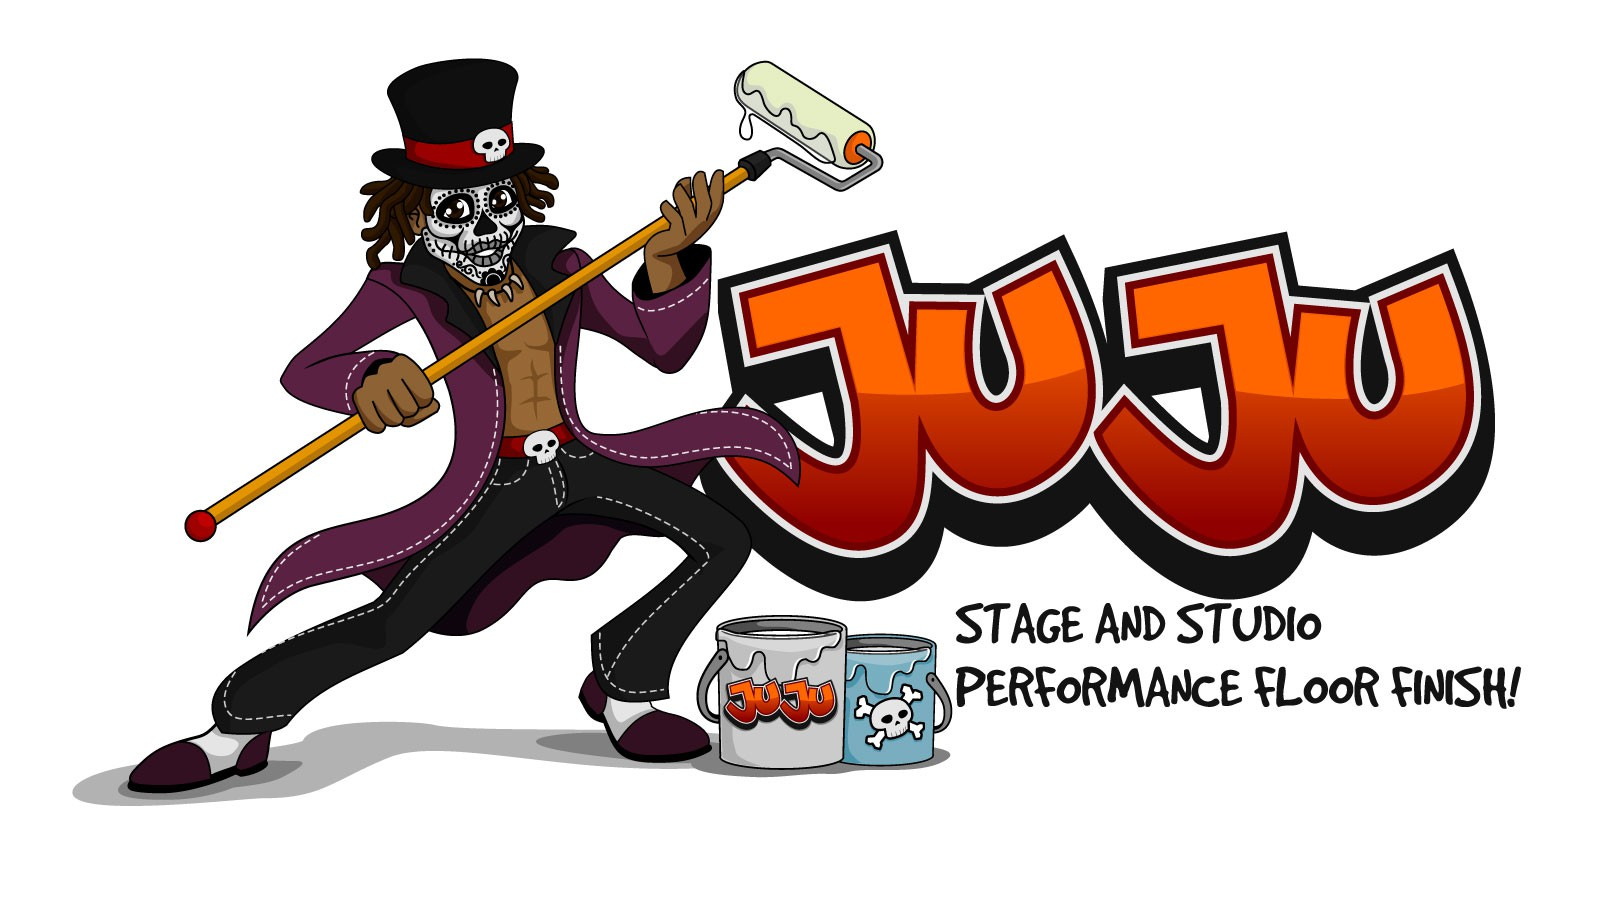 STM Studio Supplies need a hip character logo for Juju: Stage and Studio Performance Floor Finish!